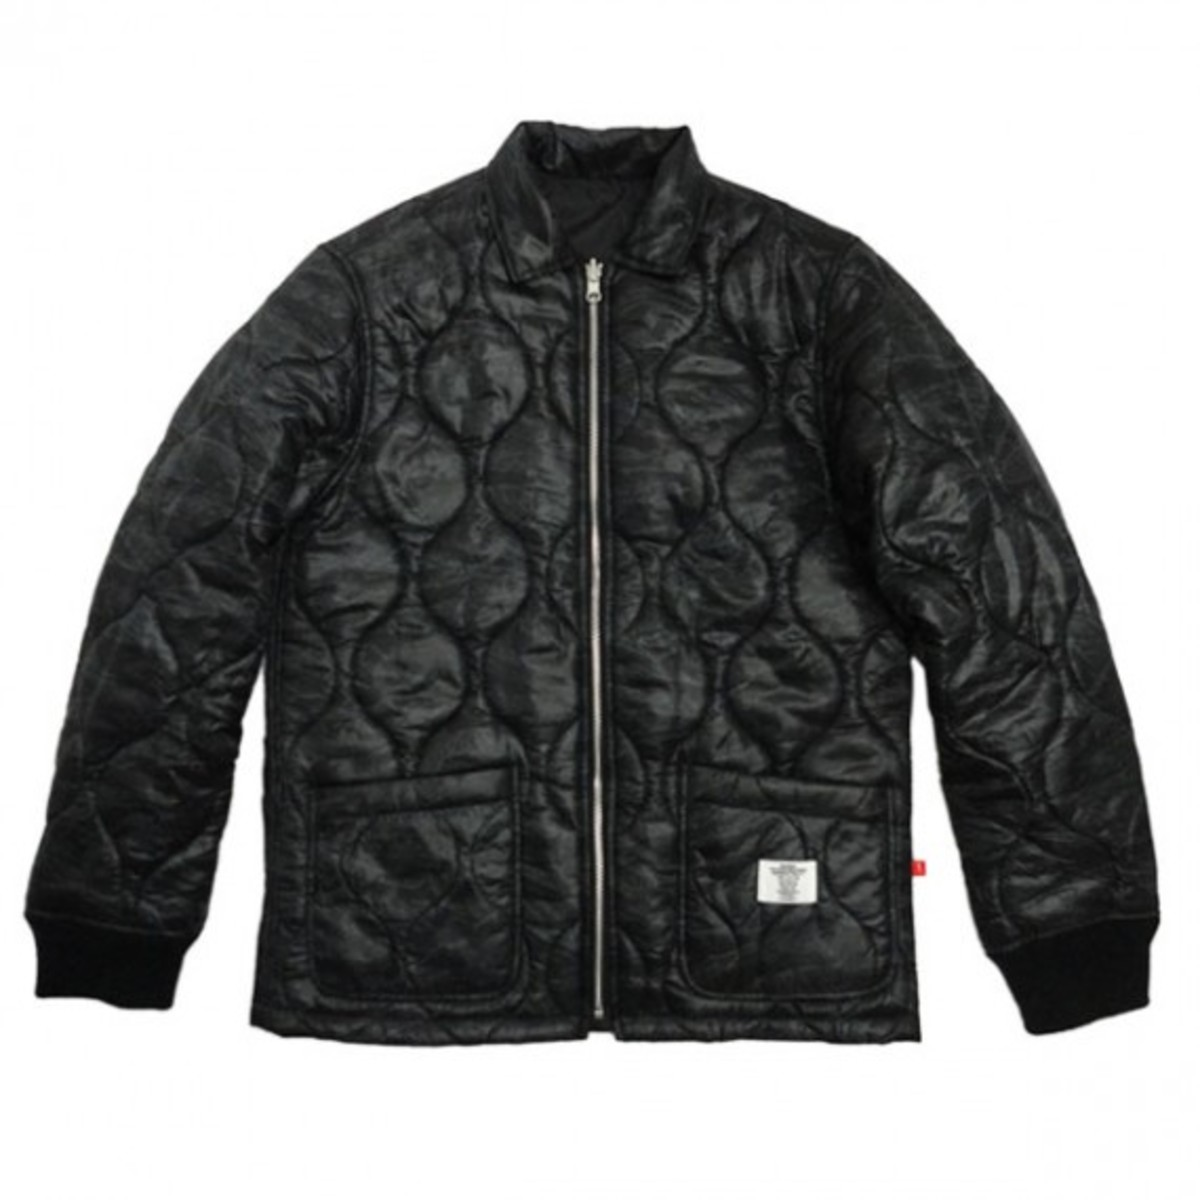 joey-quilting-jacket-black-01